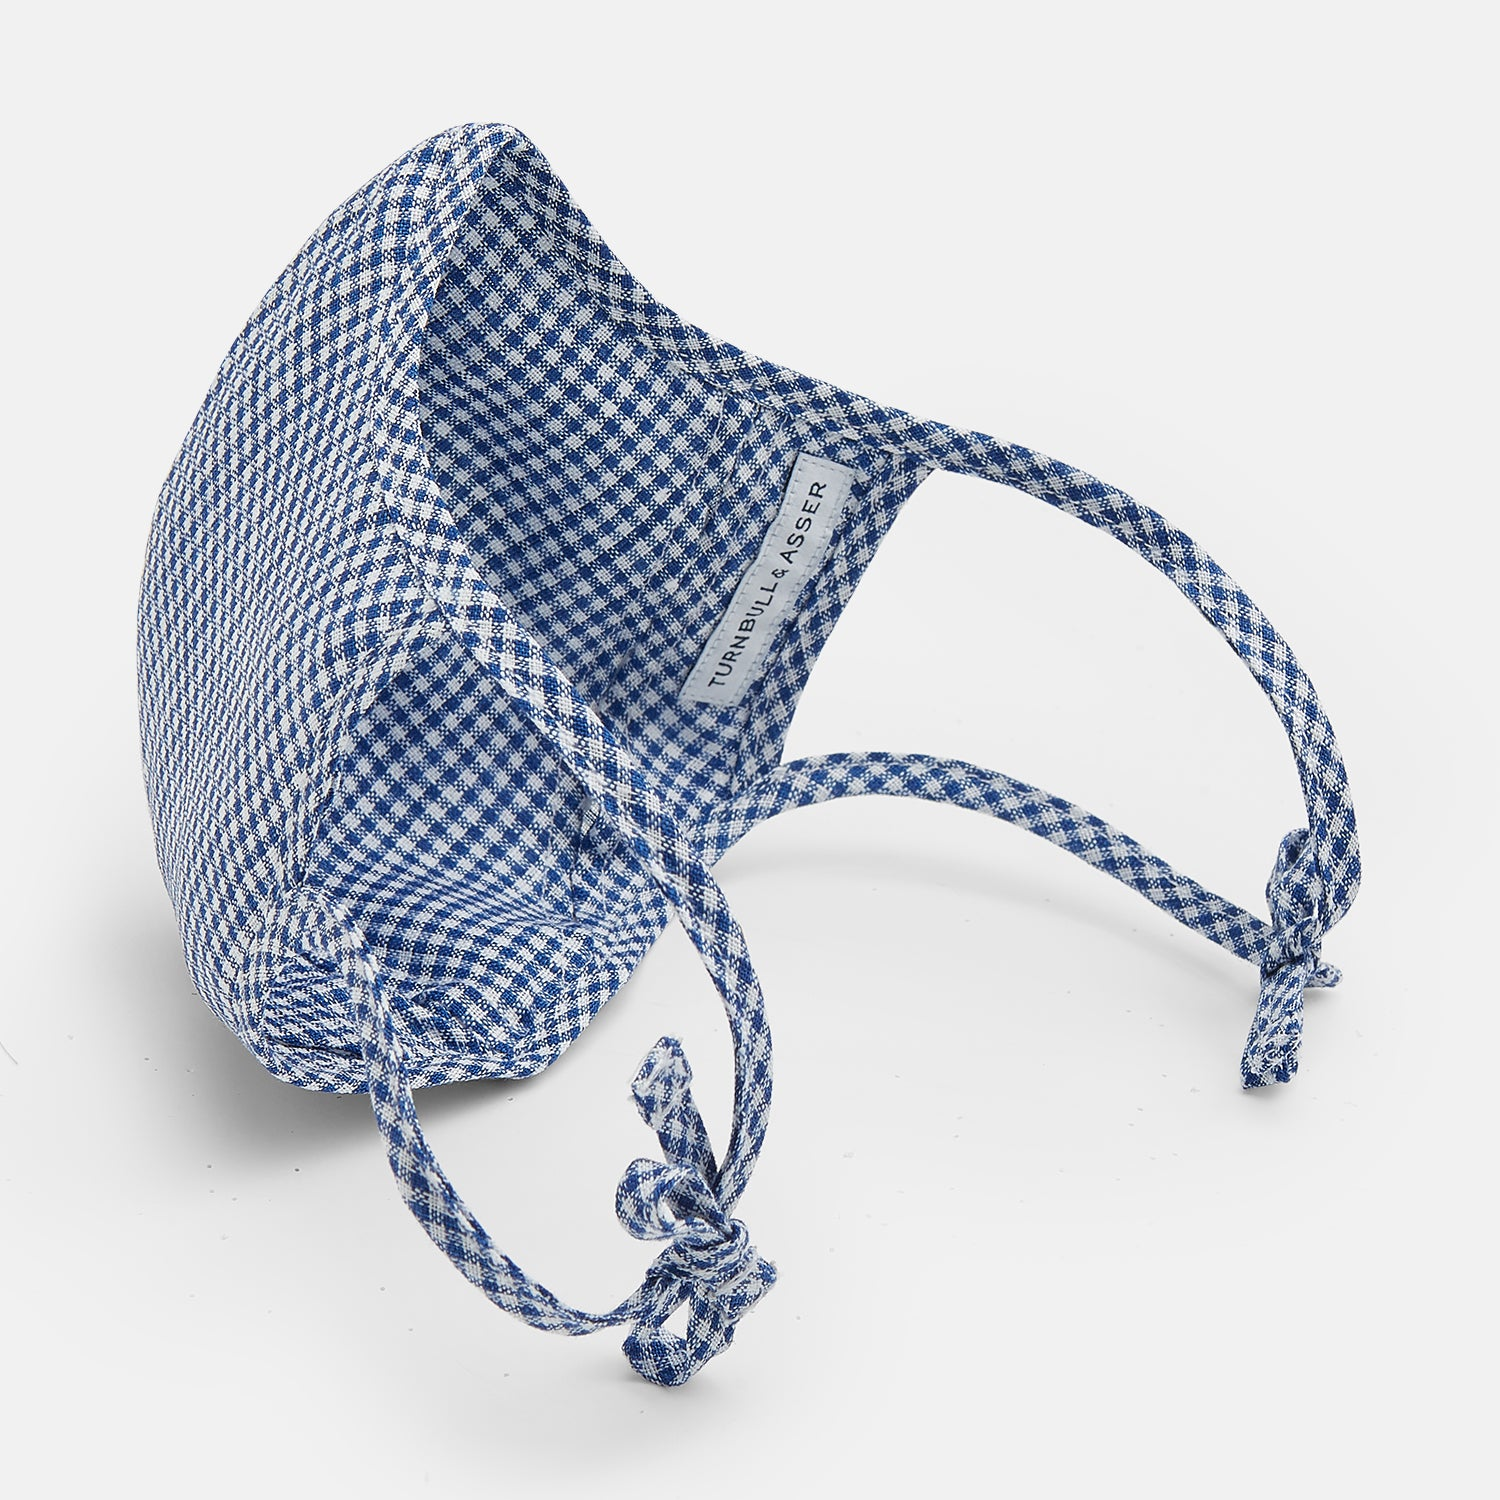 Blue, Yellow & Pink Candy-Striped Cotton Commuter Mask with 3 VIROFORMULA™ filters